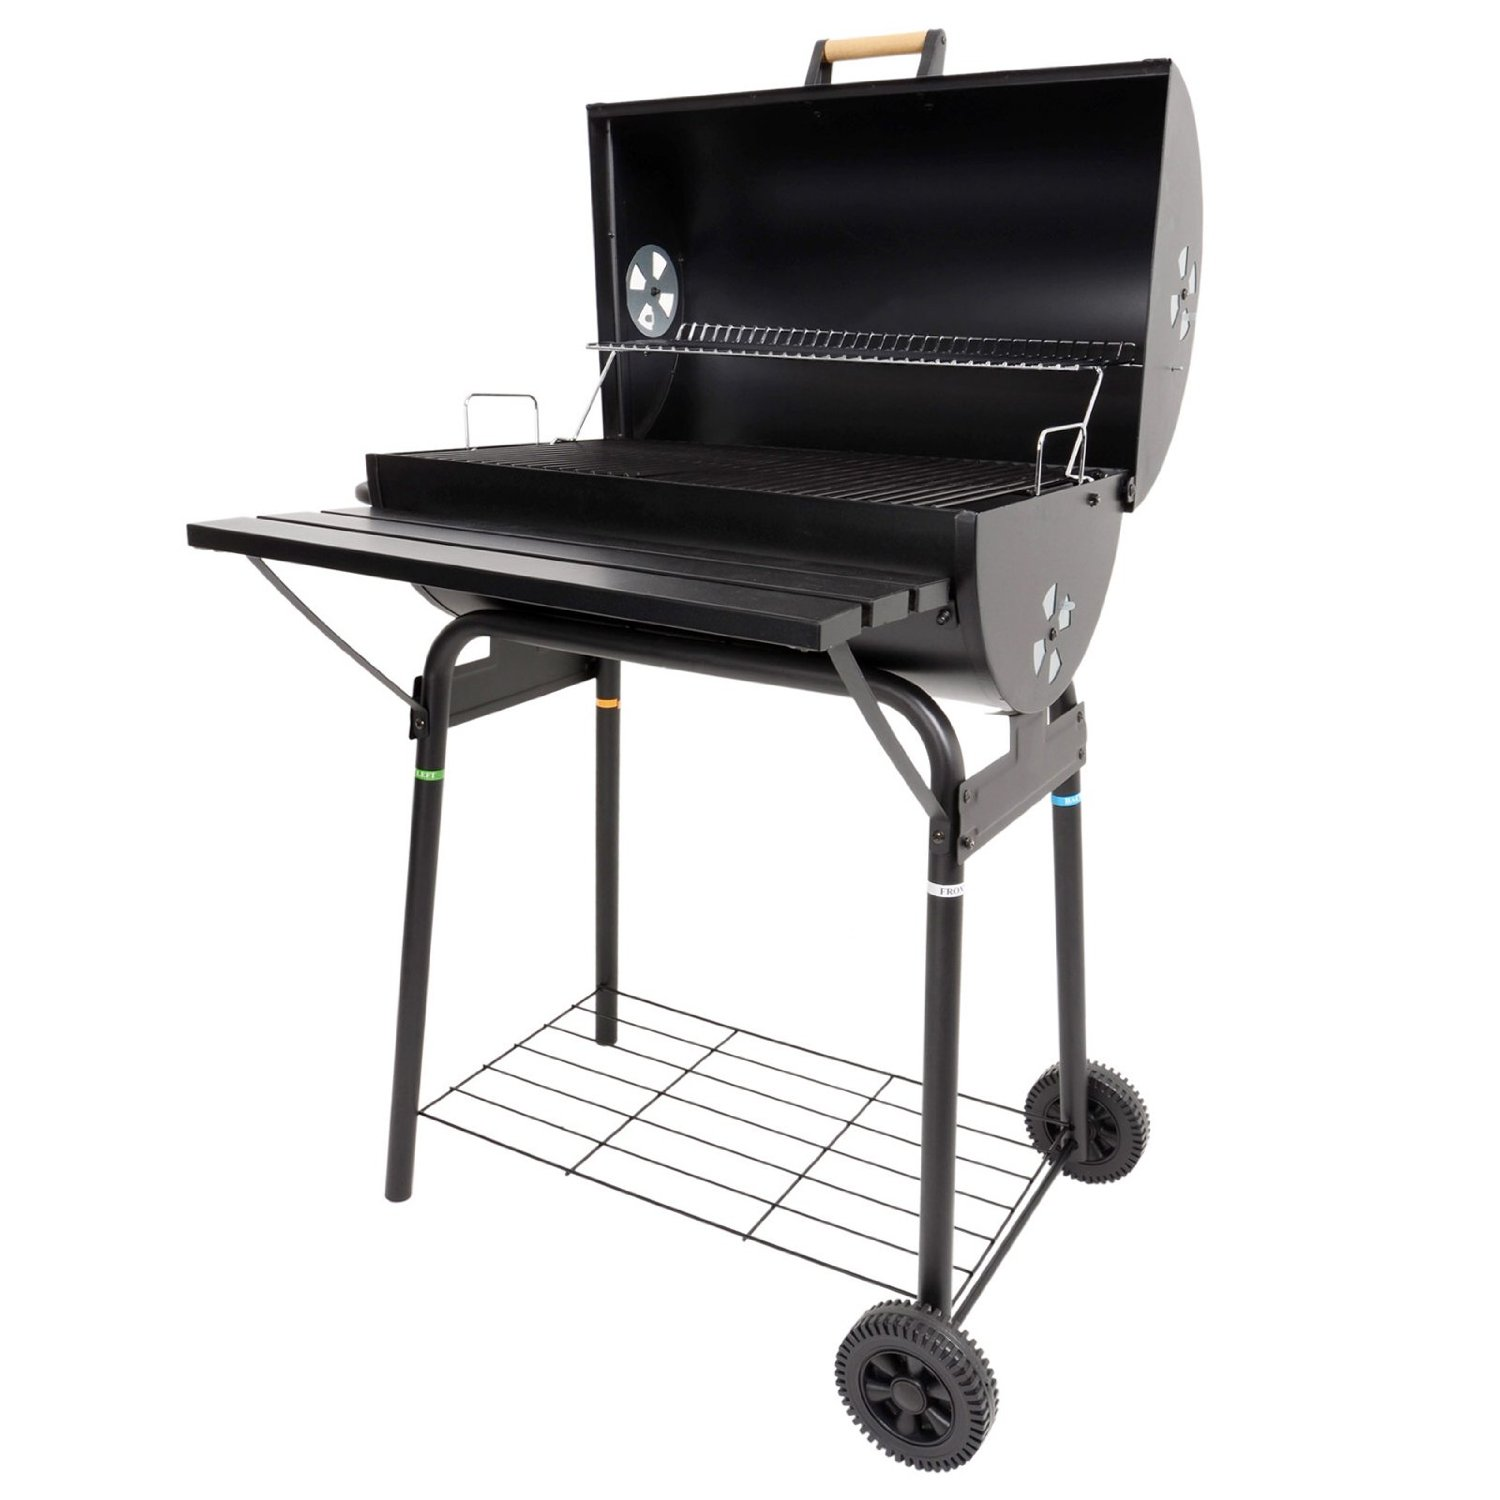 Azuma Barrel Summer Garden Grill Cooking Charcoal bbq